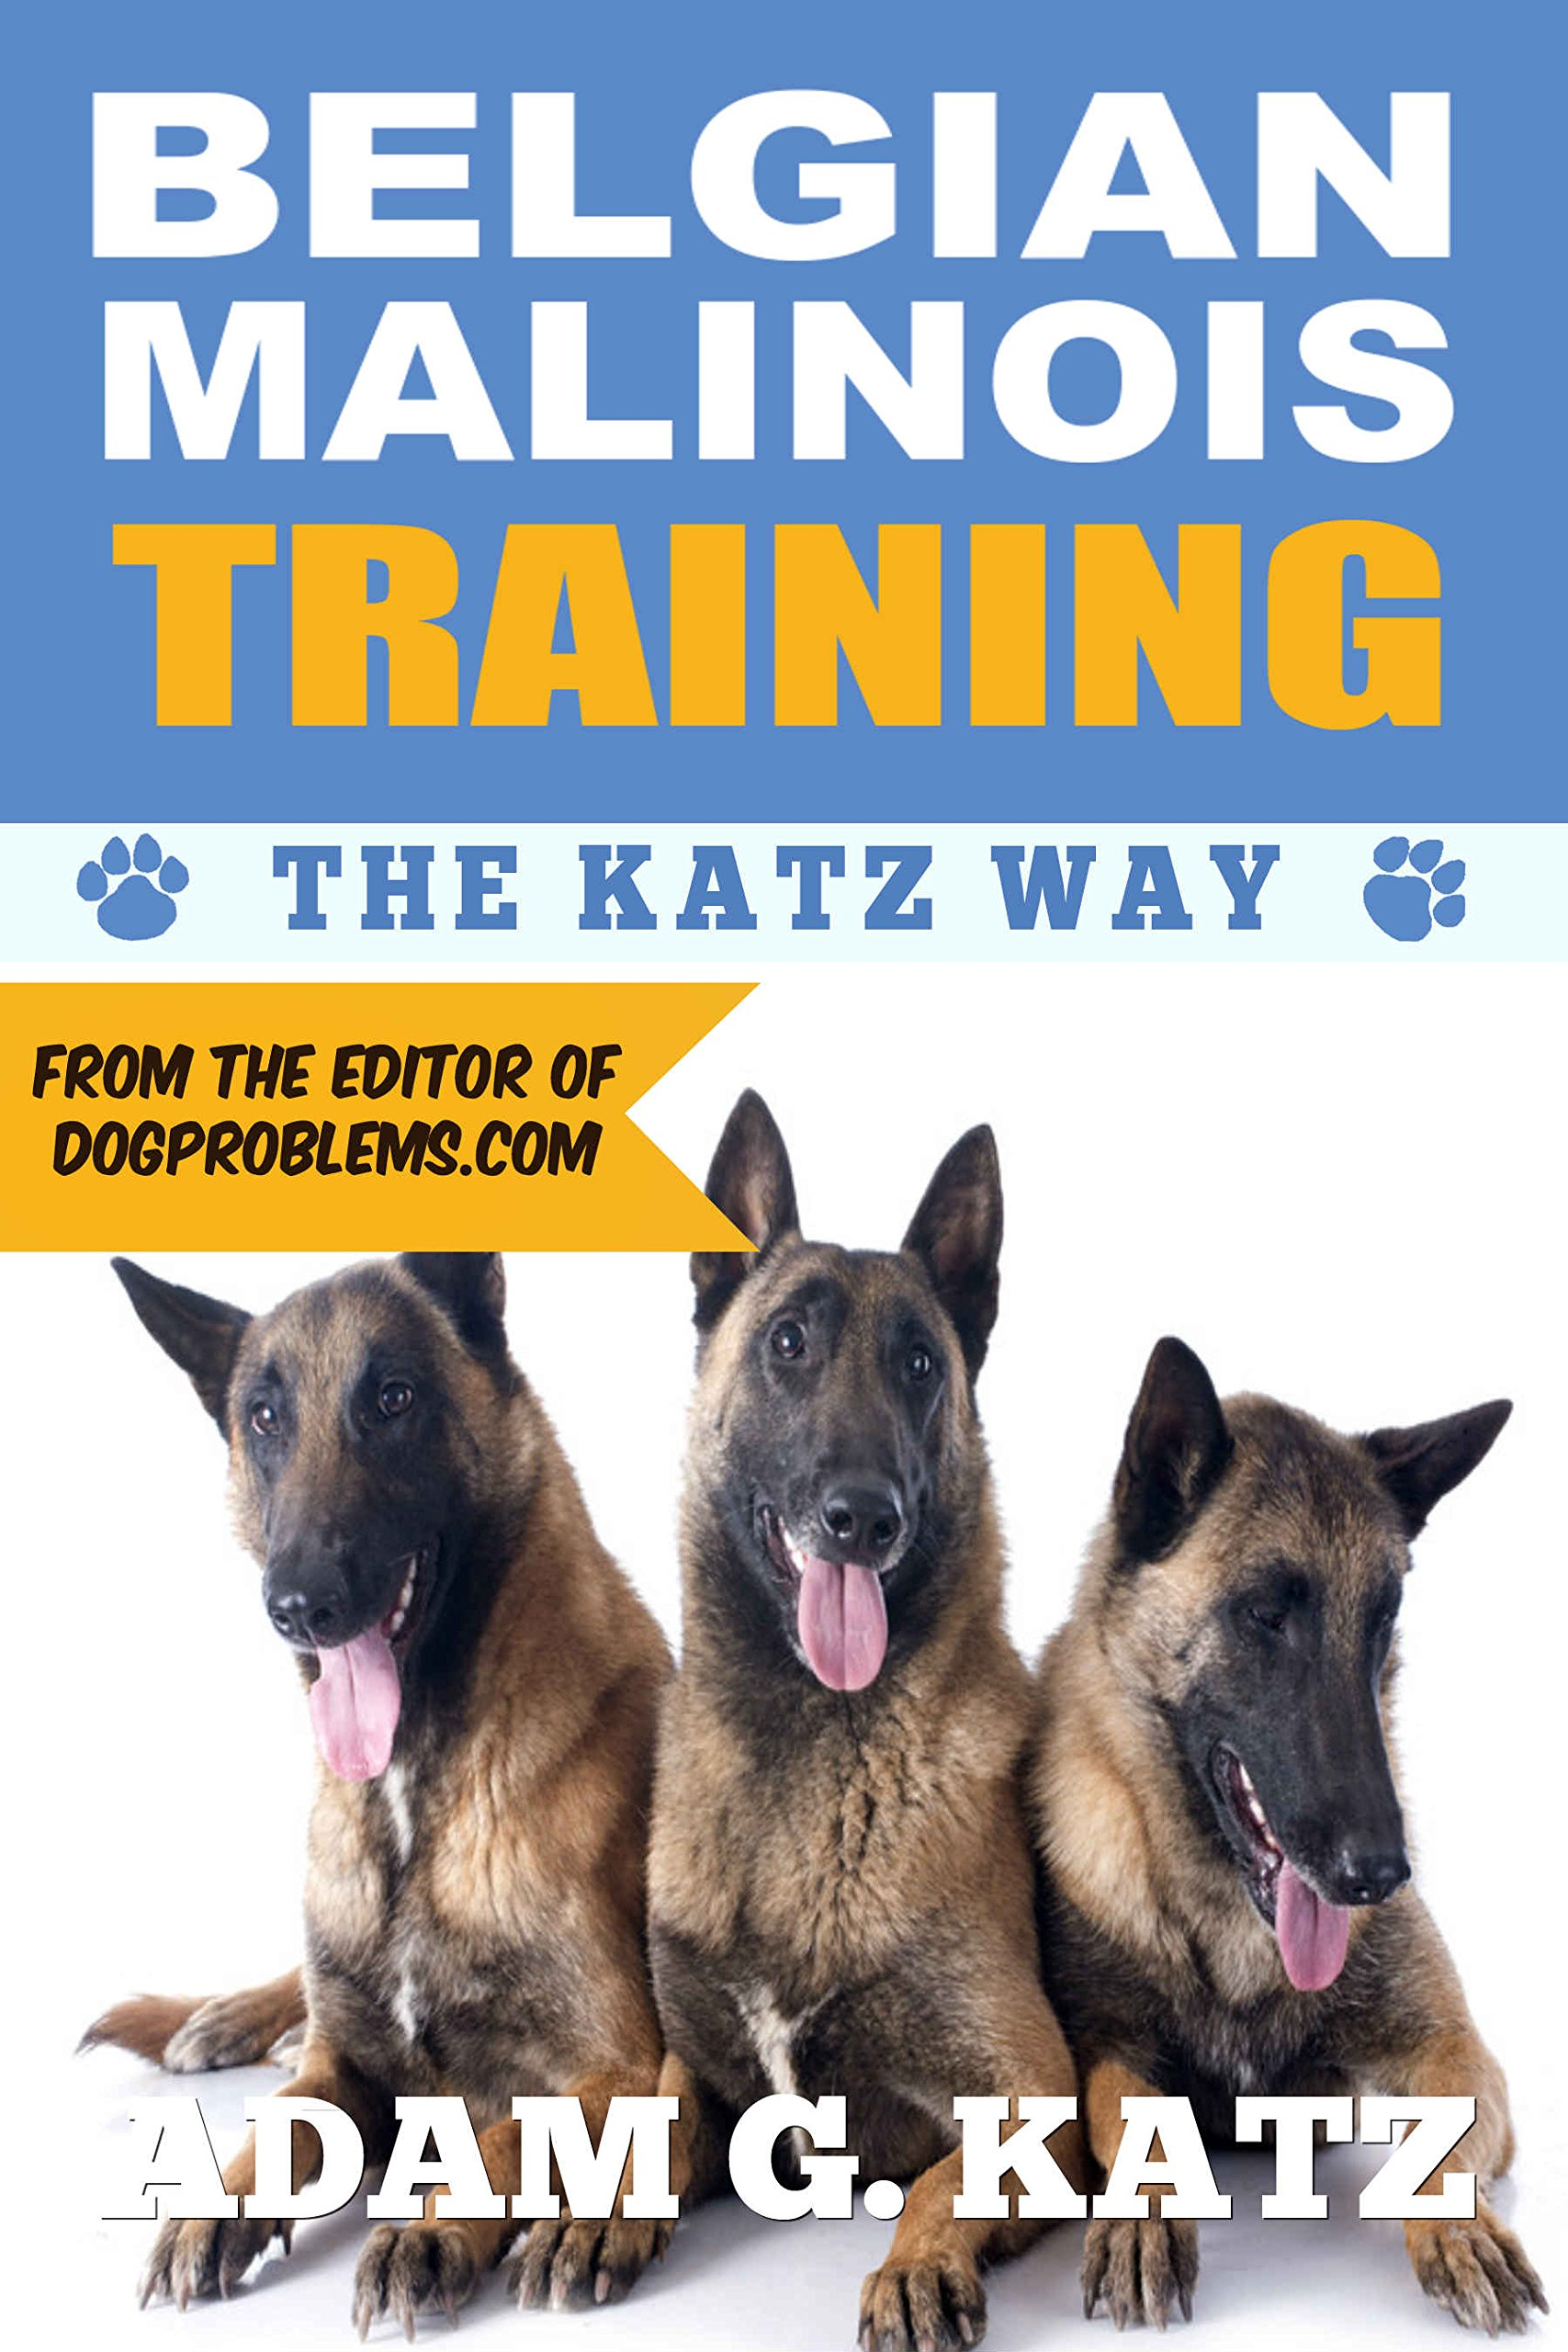 Belgian Malinois Training: The Katz Way